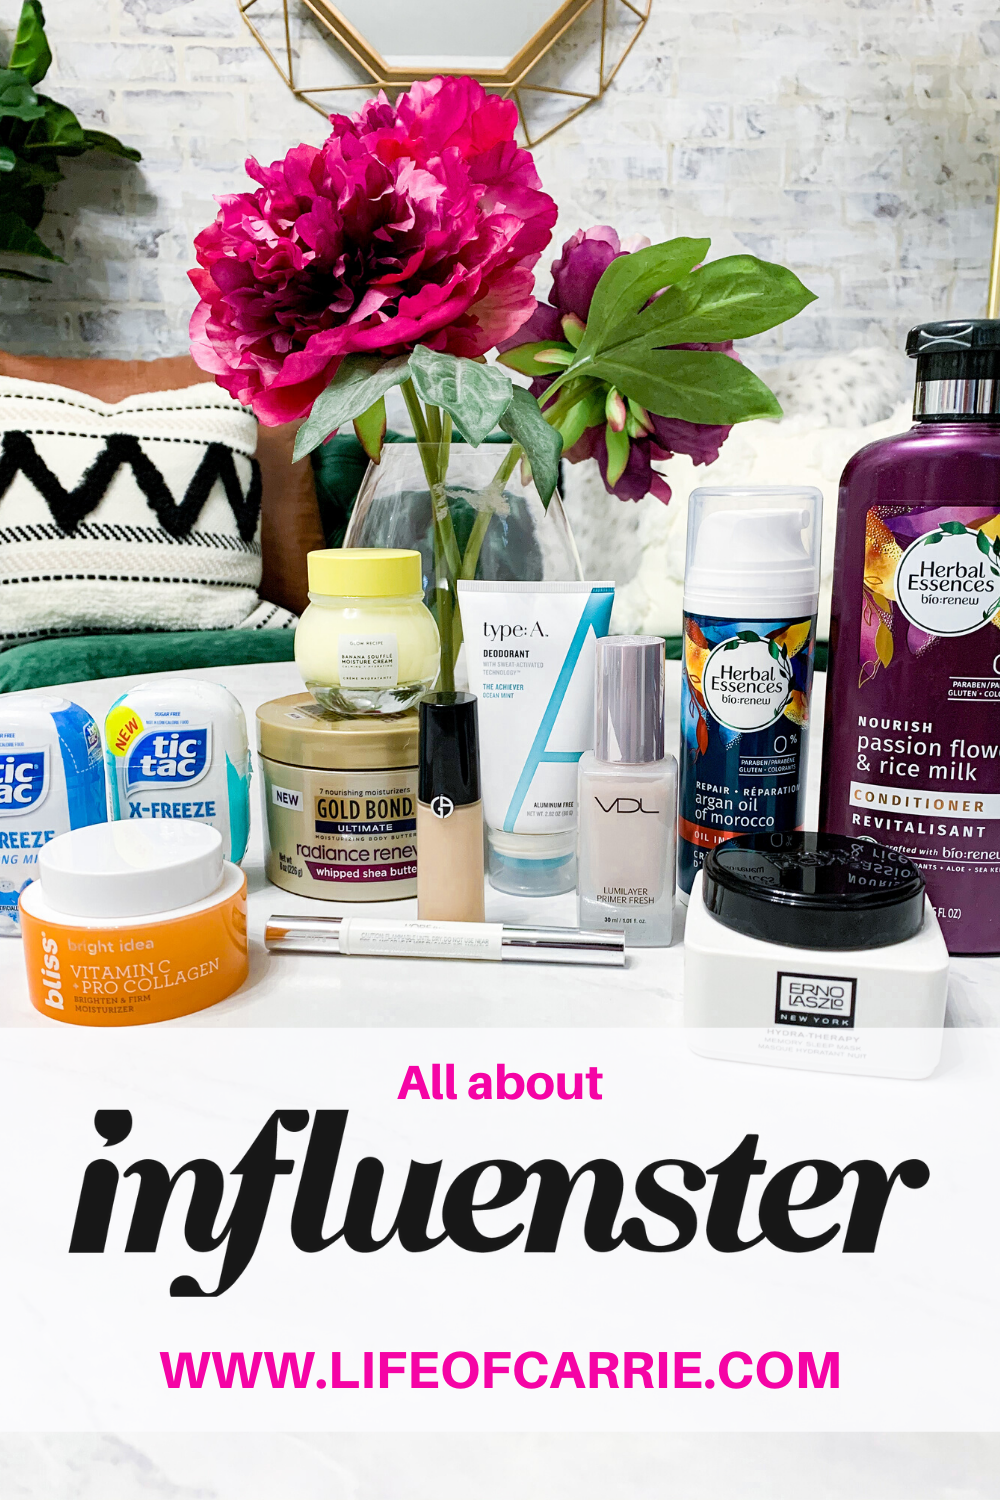 How To Get Free Makeup Free Skincare And Free Items To Review All About Influenster In 2020 Influenster Get Free Makeup Rosacea Skin Care